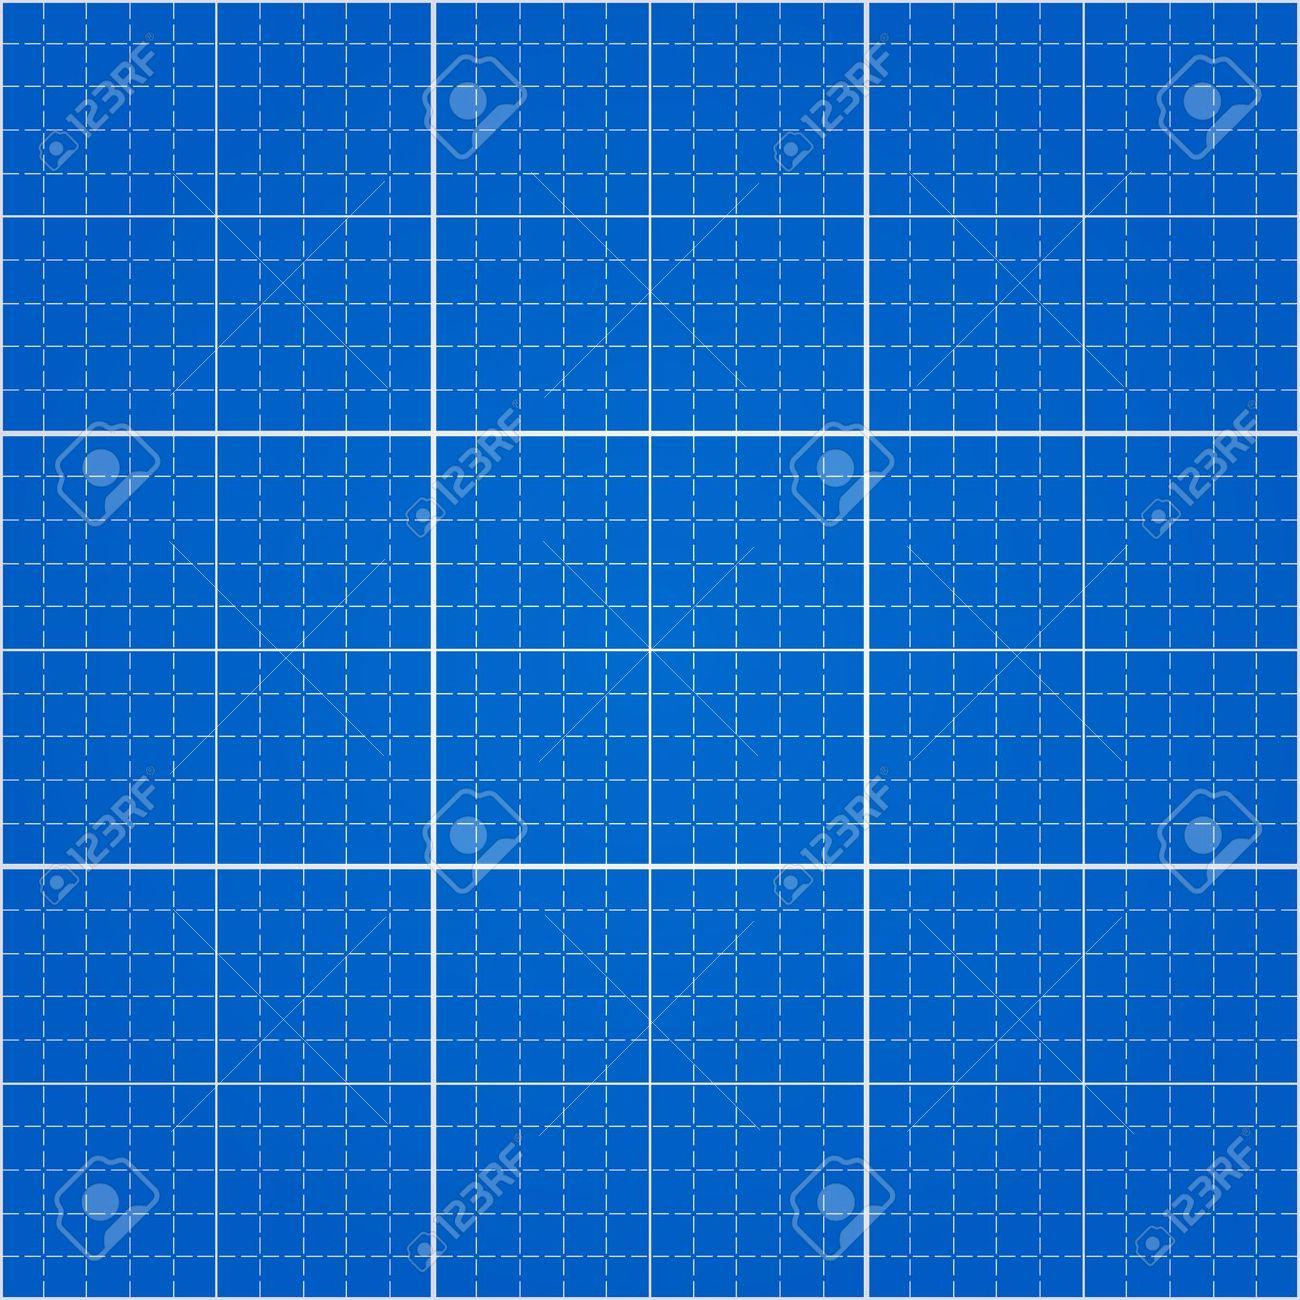 Blue print backgrounds wallpaper cave seamless blueprint background royalty free cliparts vectors and malvernweather Choice Image